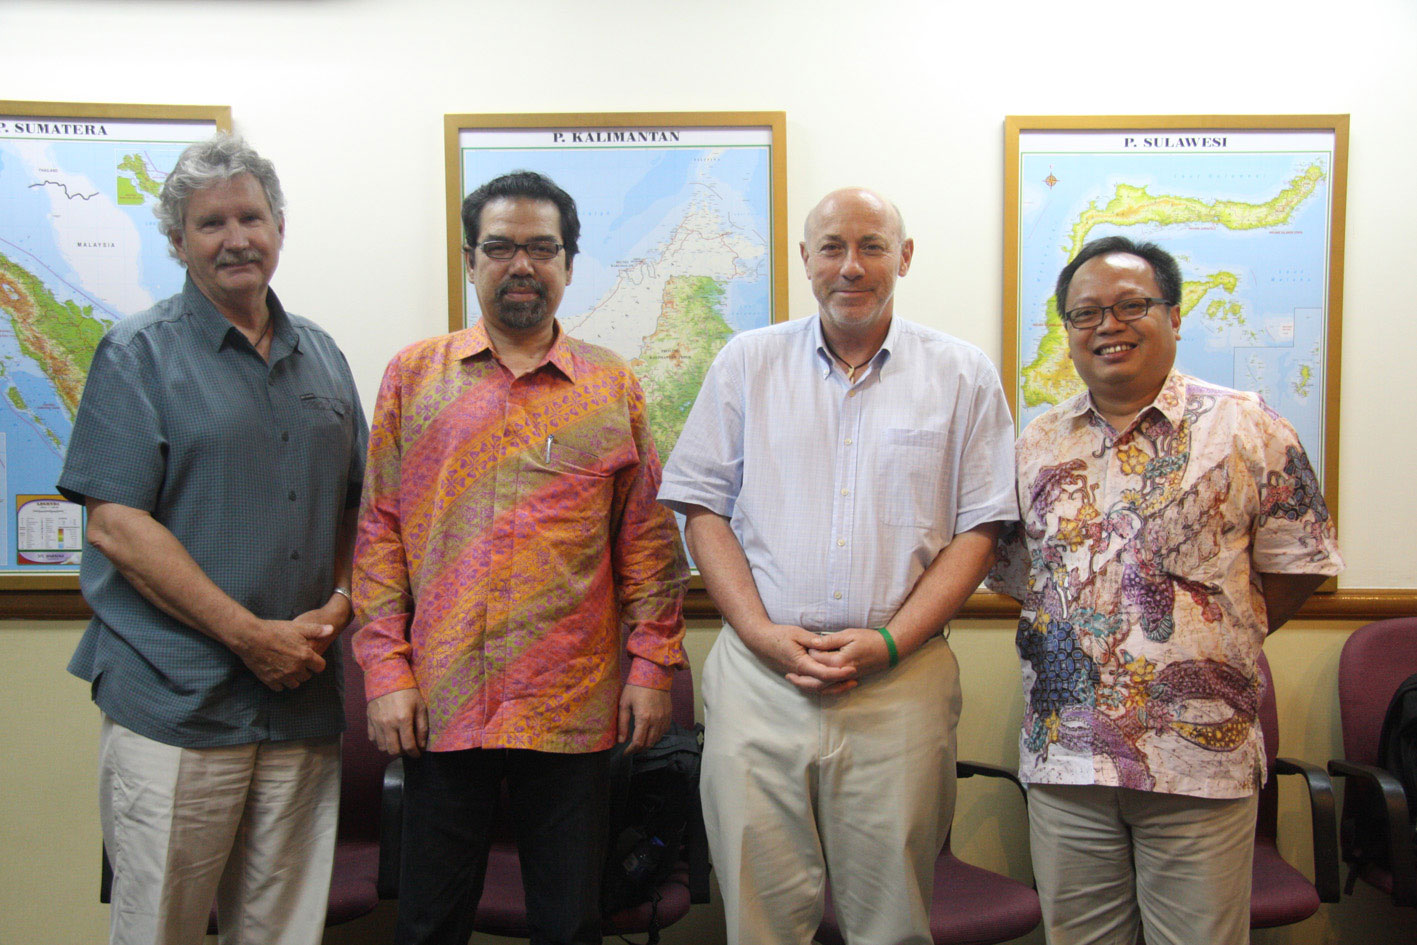 Members of The Independent Stakeholder Advisory Committee (SAC). From left to right: Joe Lawson, Al Azhar, James Griffiths, Budi Wardhana